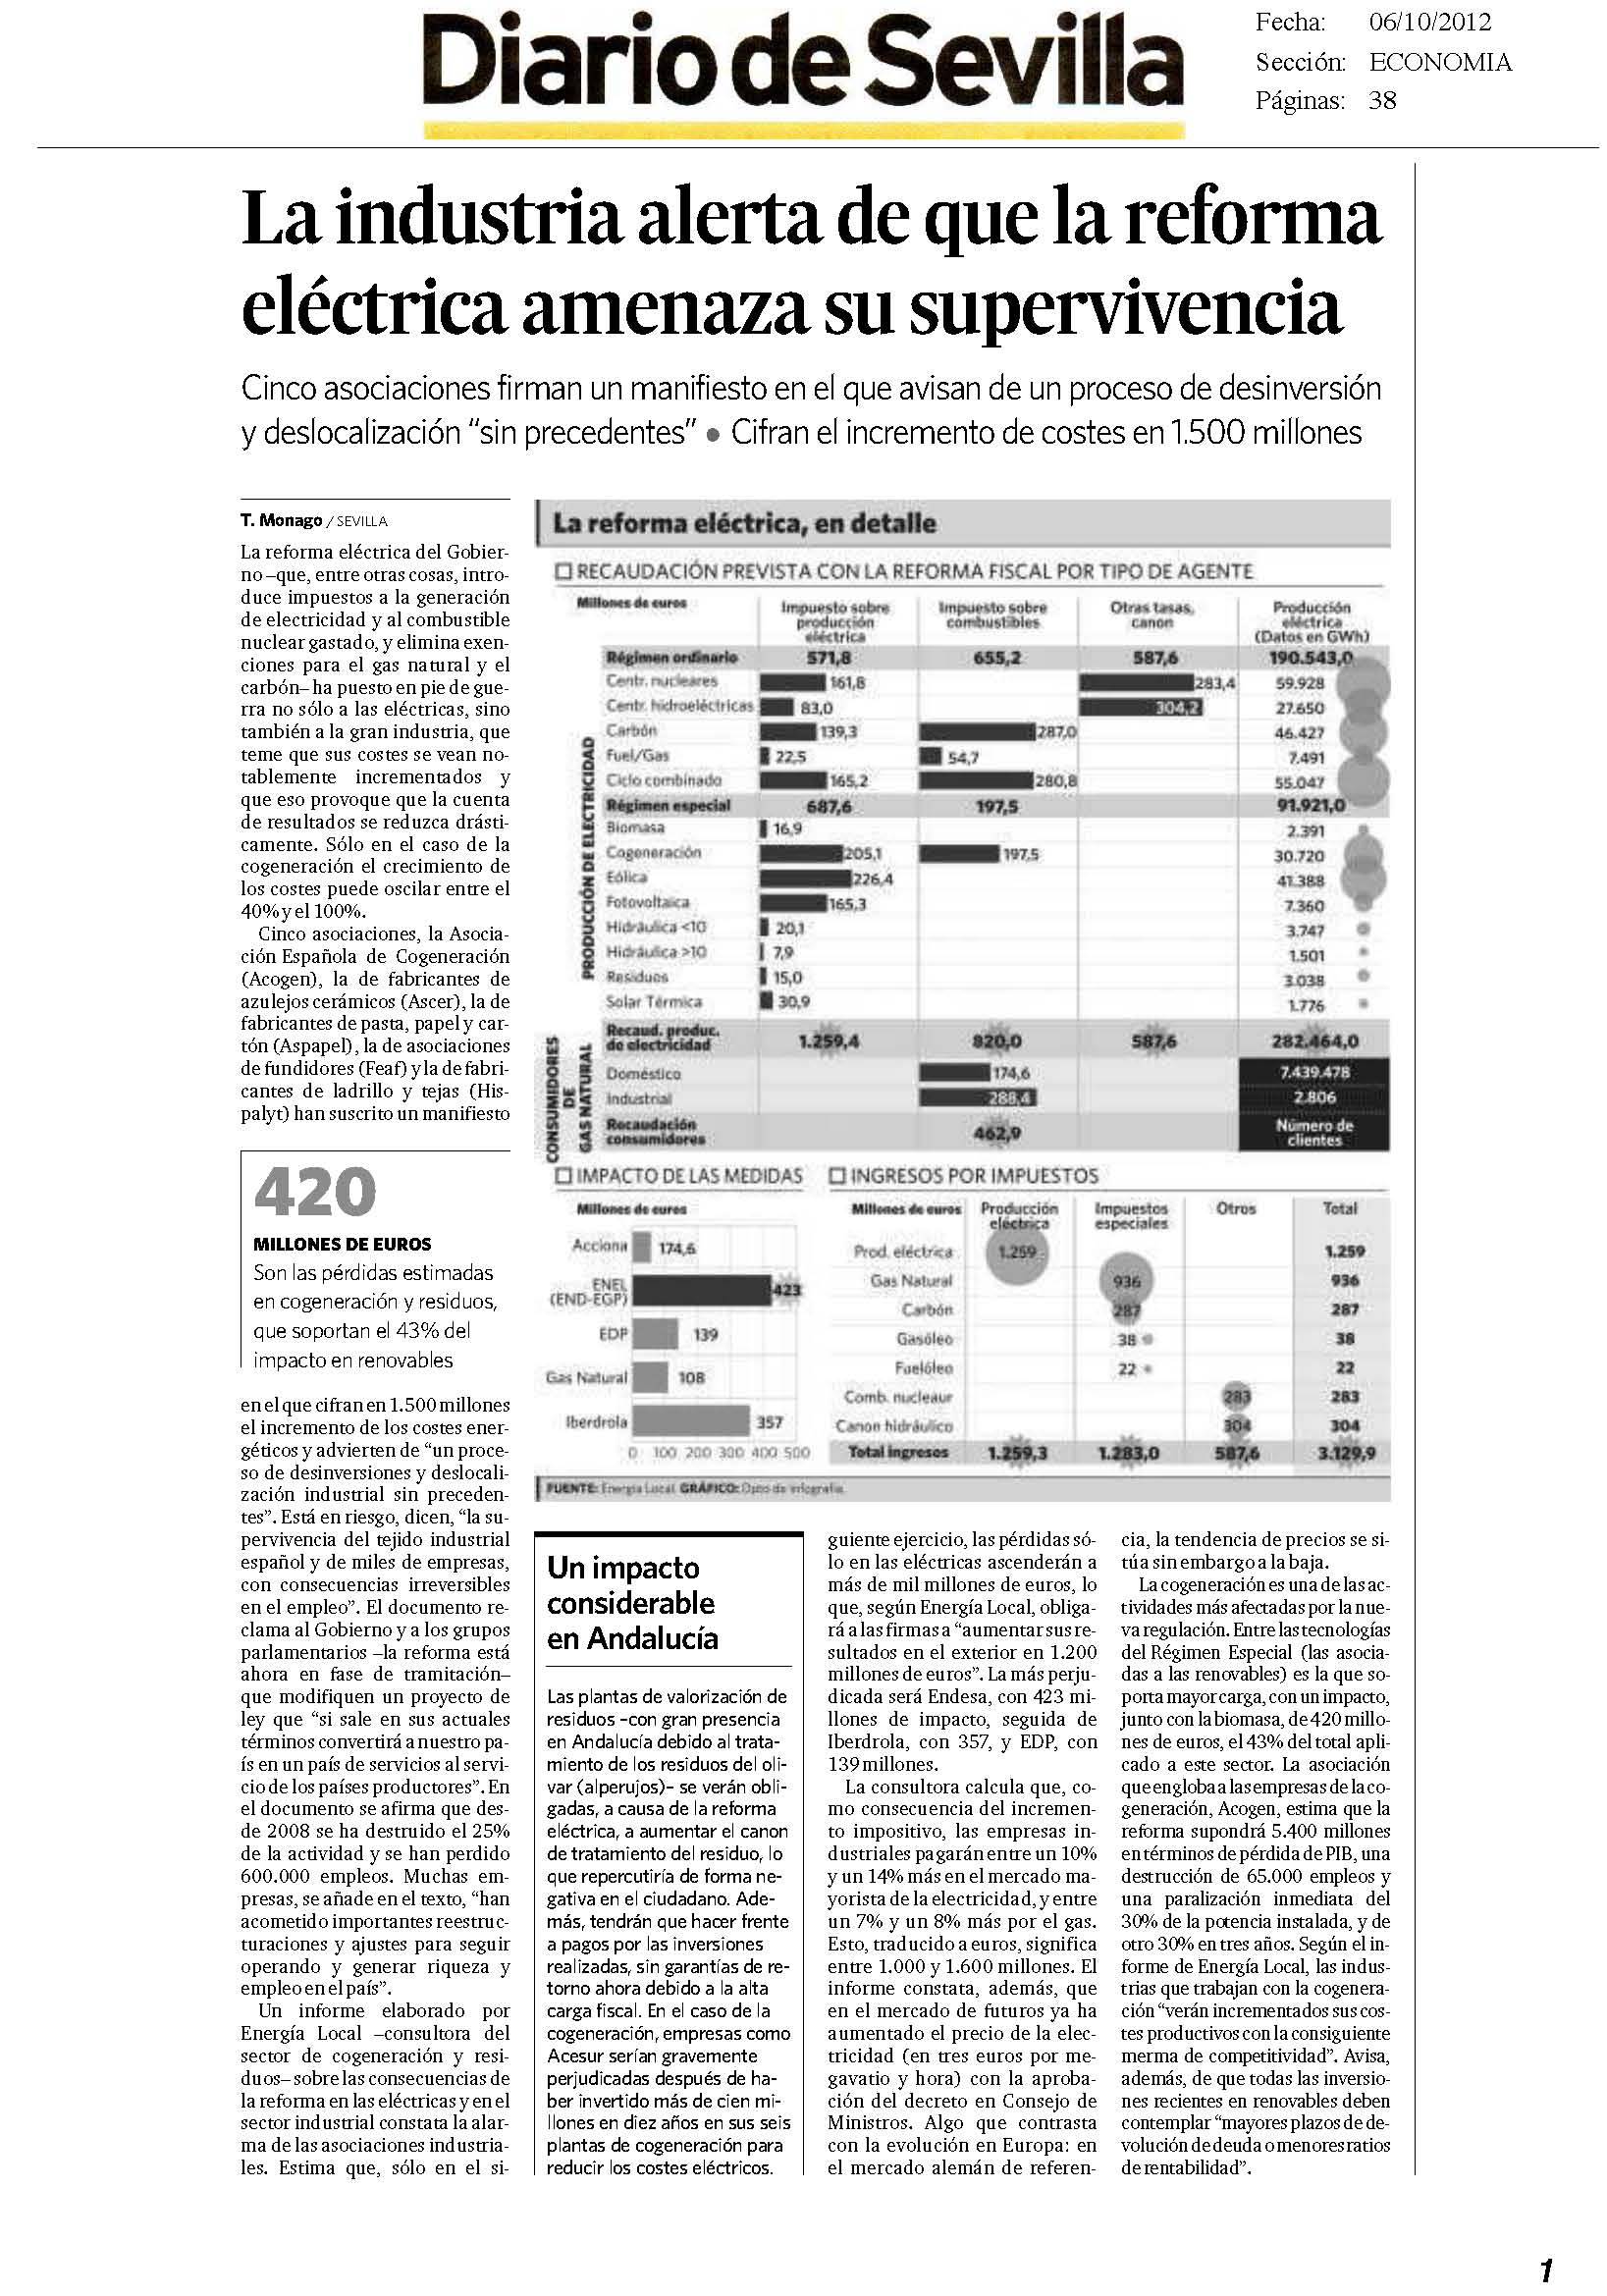 energia local. diario de sevilla. 06.10.12